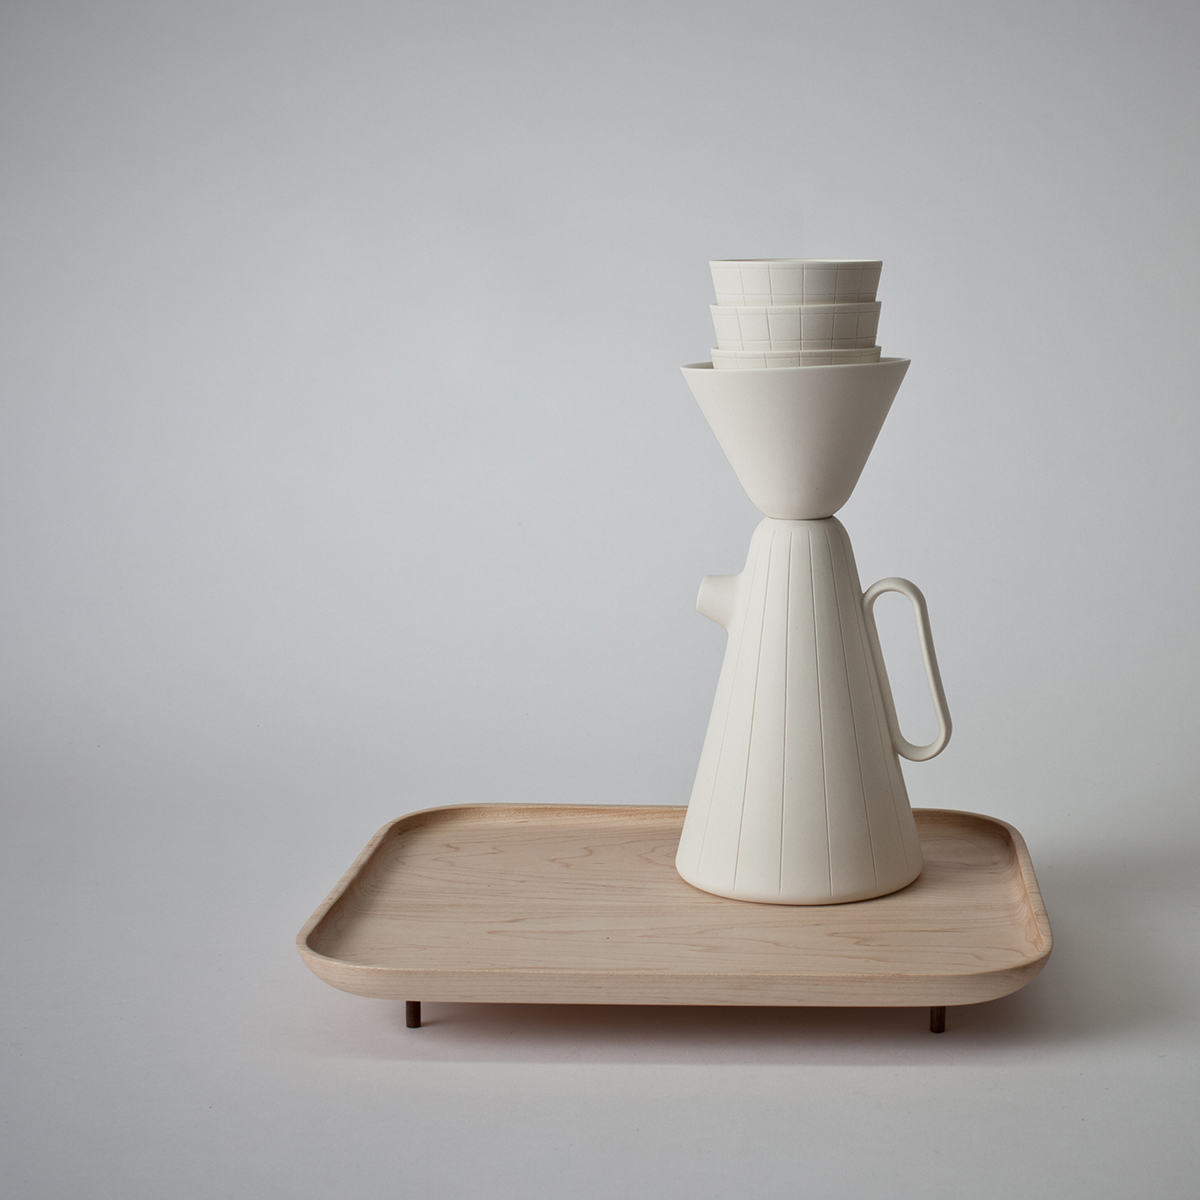 Sucabaruca coffee set by Luca Nichetto for Mjolk :08